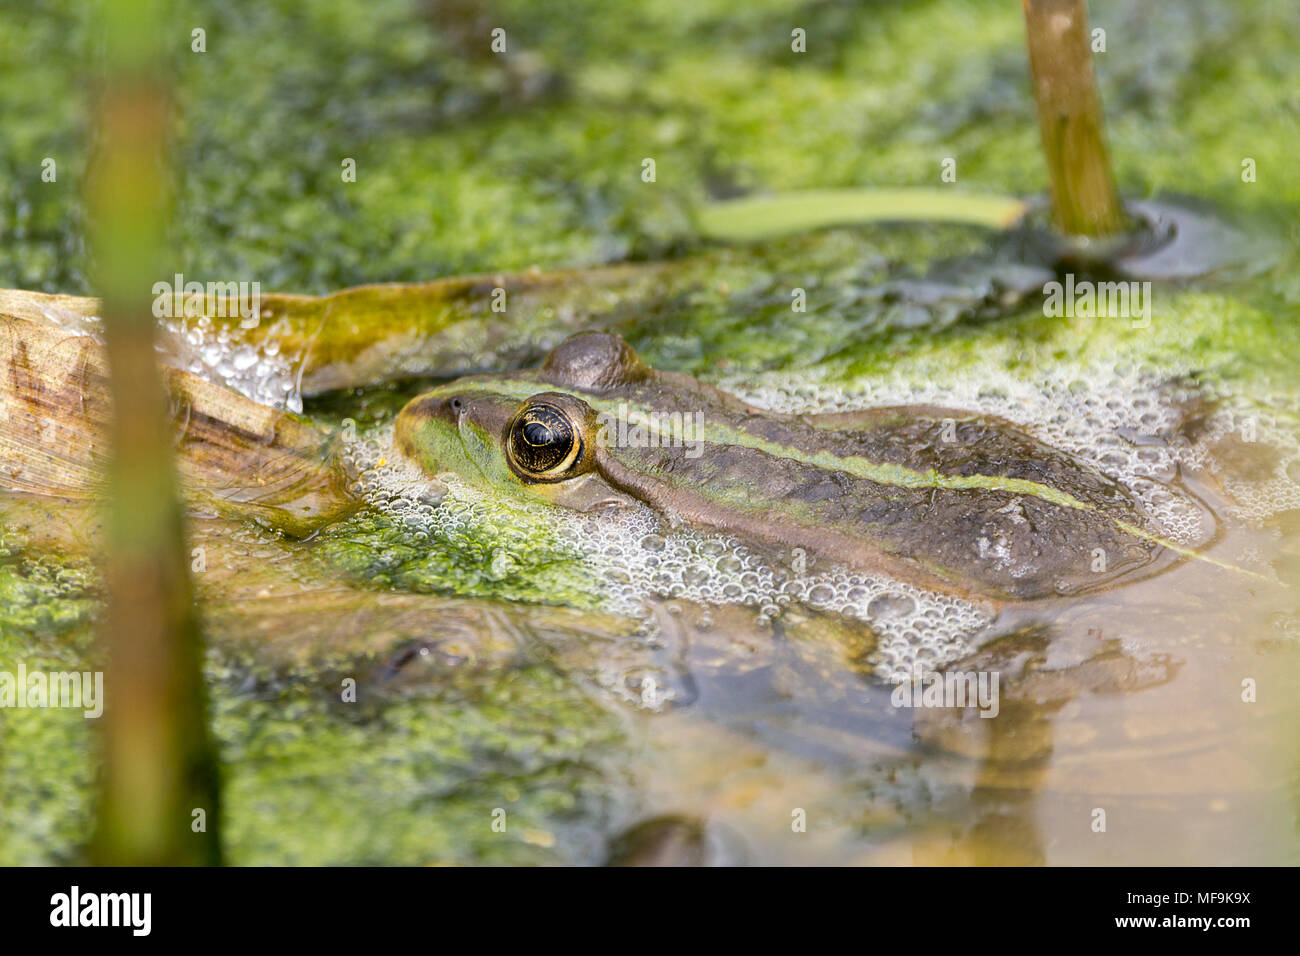 Marsh frog (Rana ridibunda) April 2018. A little croaking and plenty of frothing on the water around them. Mostly hiding in algae and vegetation. - Stock Image